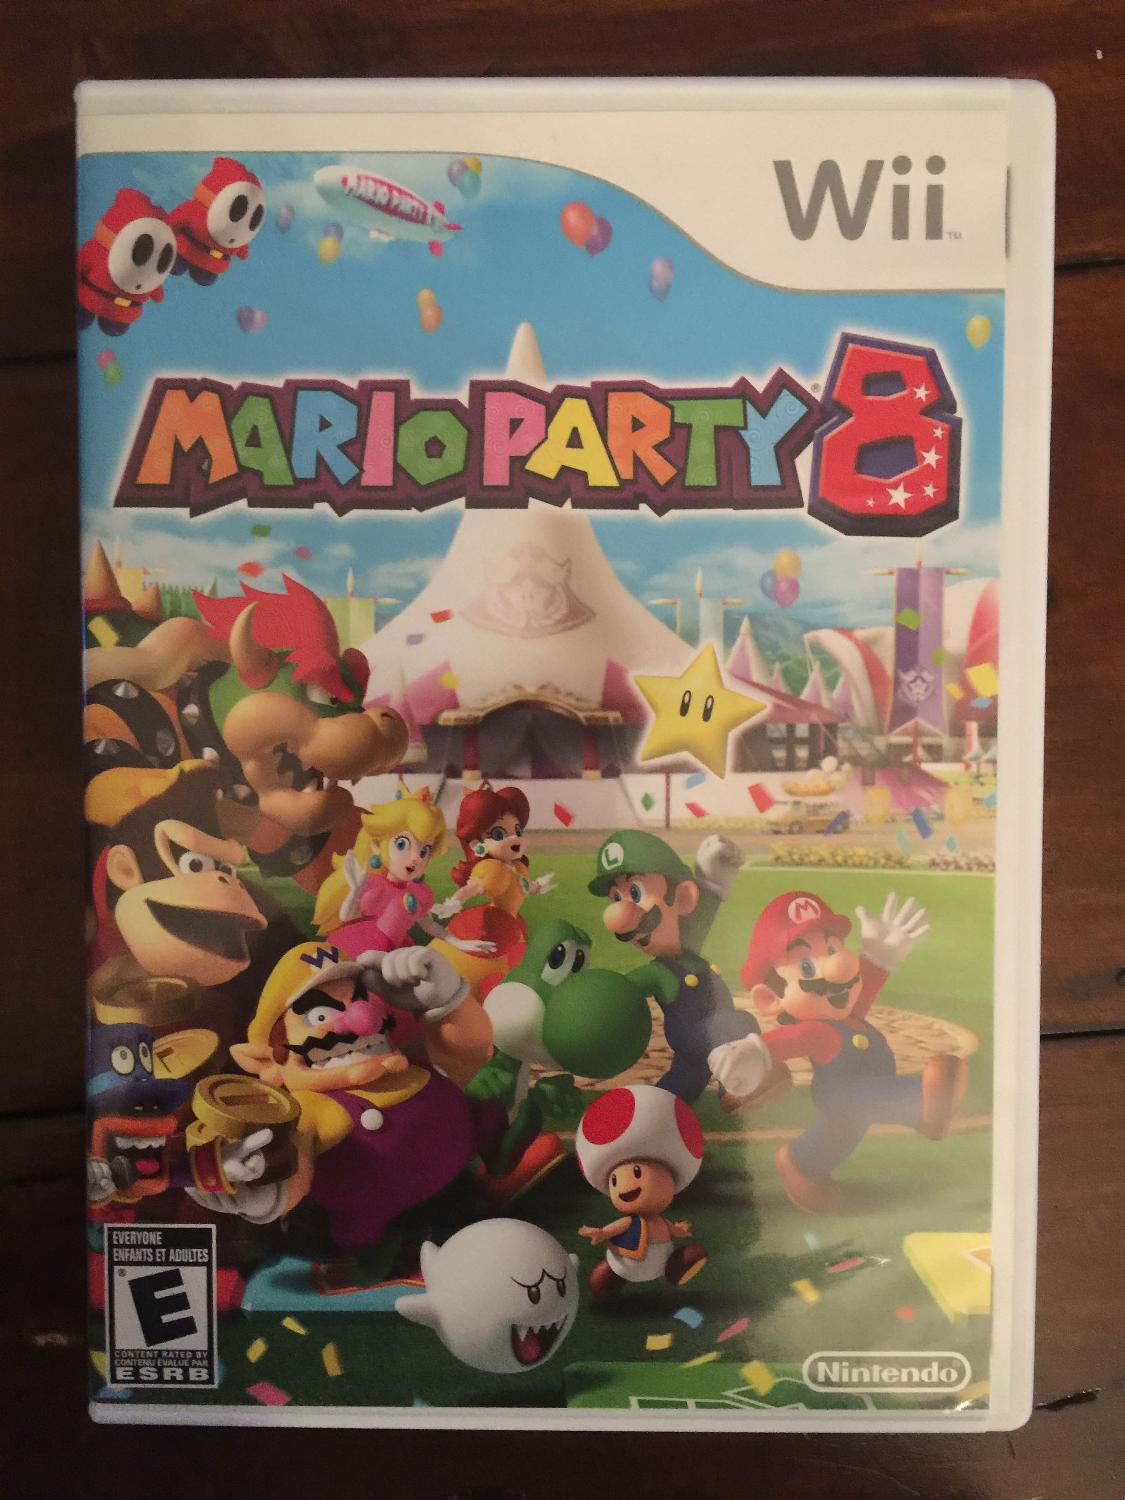 find more mario party 8 wii game like new condition for sale at up to 90 off regina sk. Black Bedroom Furniture Sets. Home Design Ideas